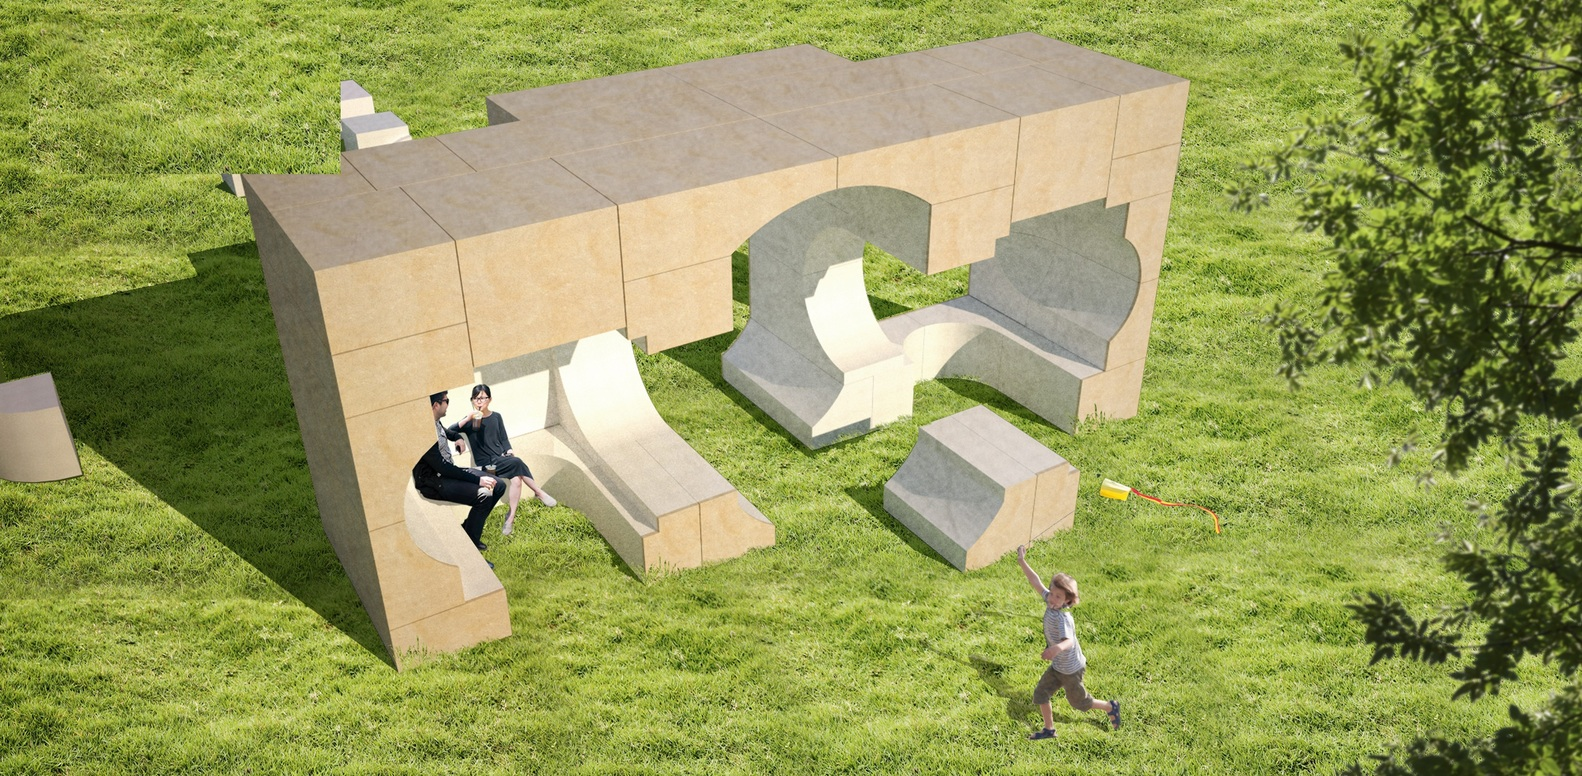 Super Gallery Of Bigs 2016 Serpentine Gallery Design Revealed Plus Largest Home Design Picture Inspirations Pitcheantrous